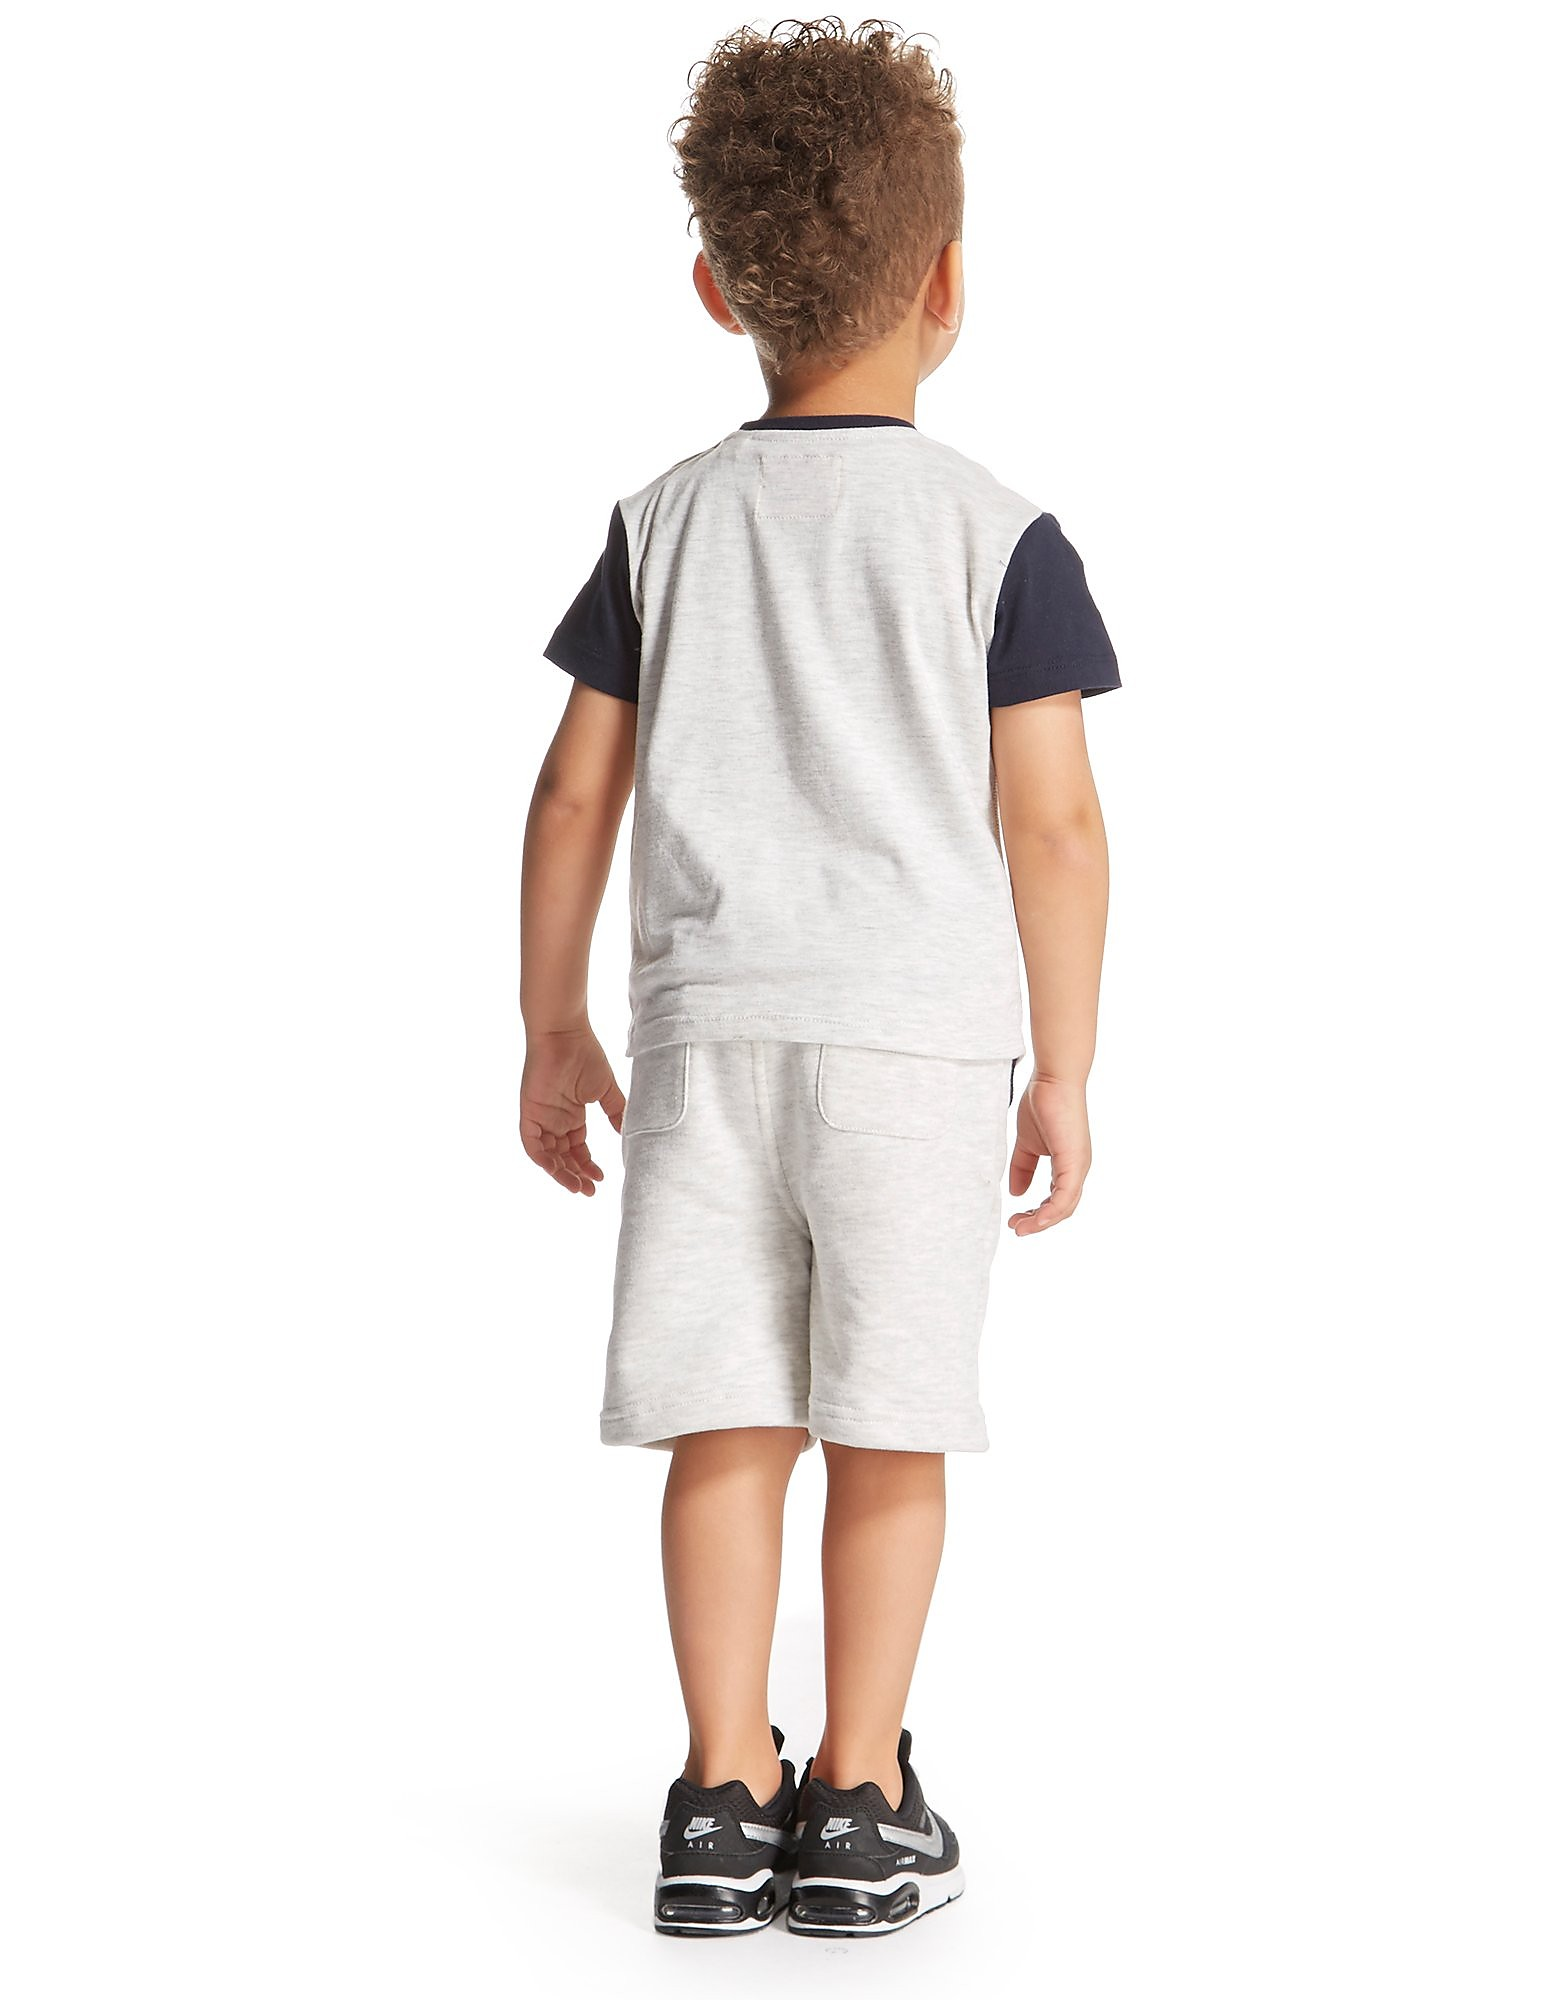 Duffer of St George New Standard Shirt and Short Set Infant